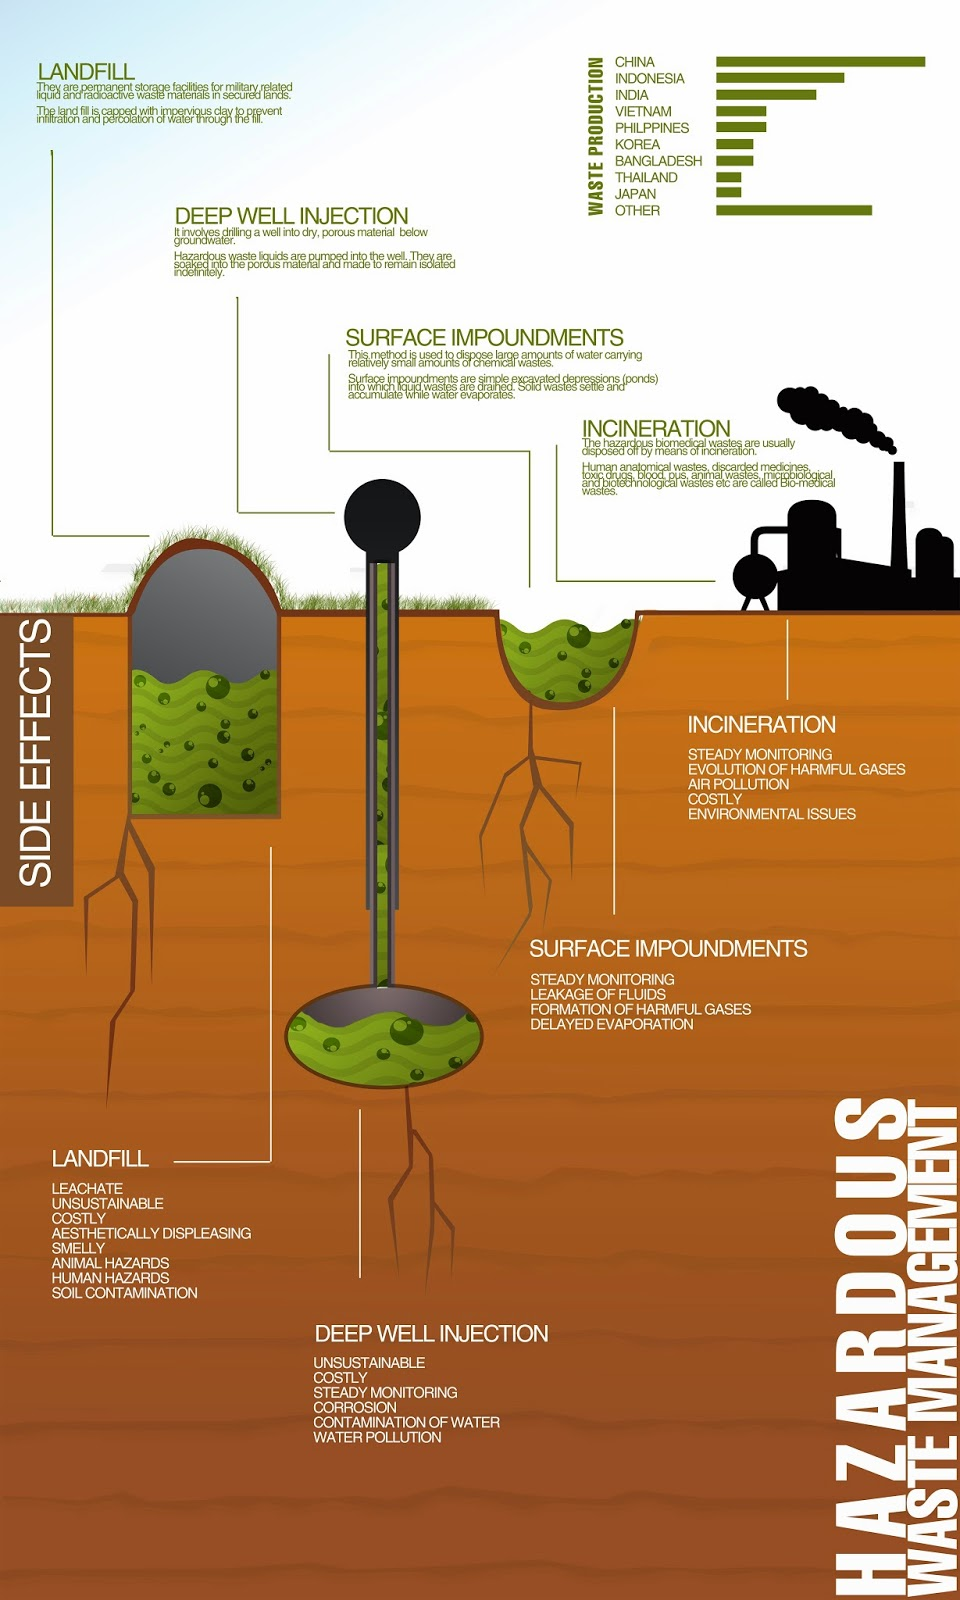 CHRISDEZINE, The Blog: INFO GRAPHIC - Hazardous Waste Management